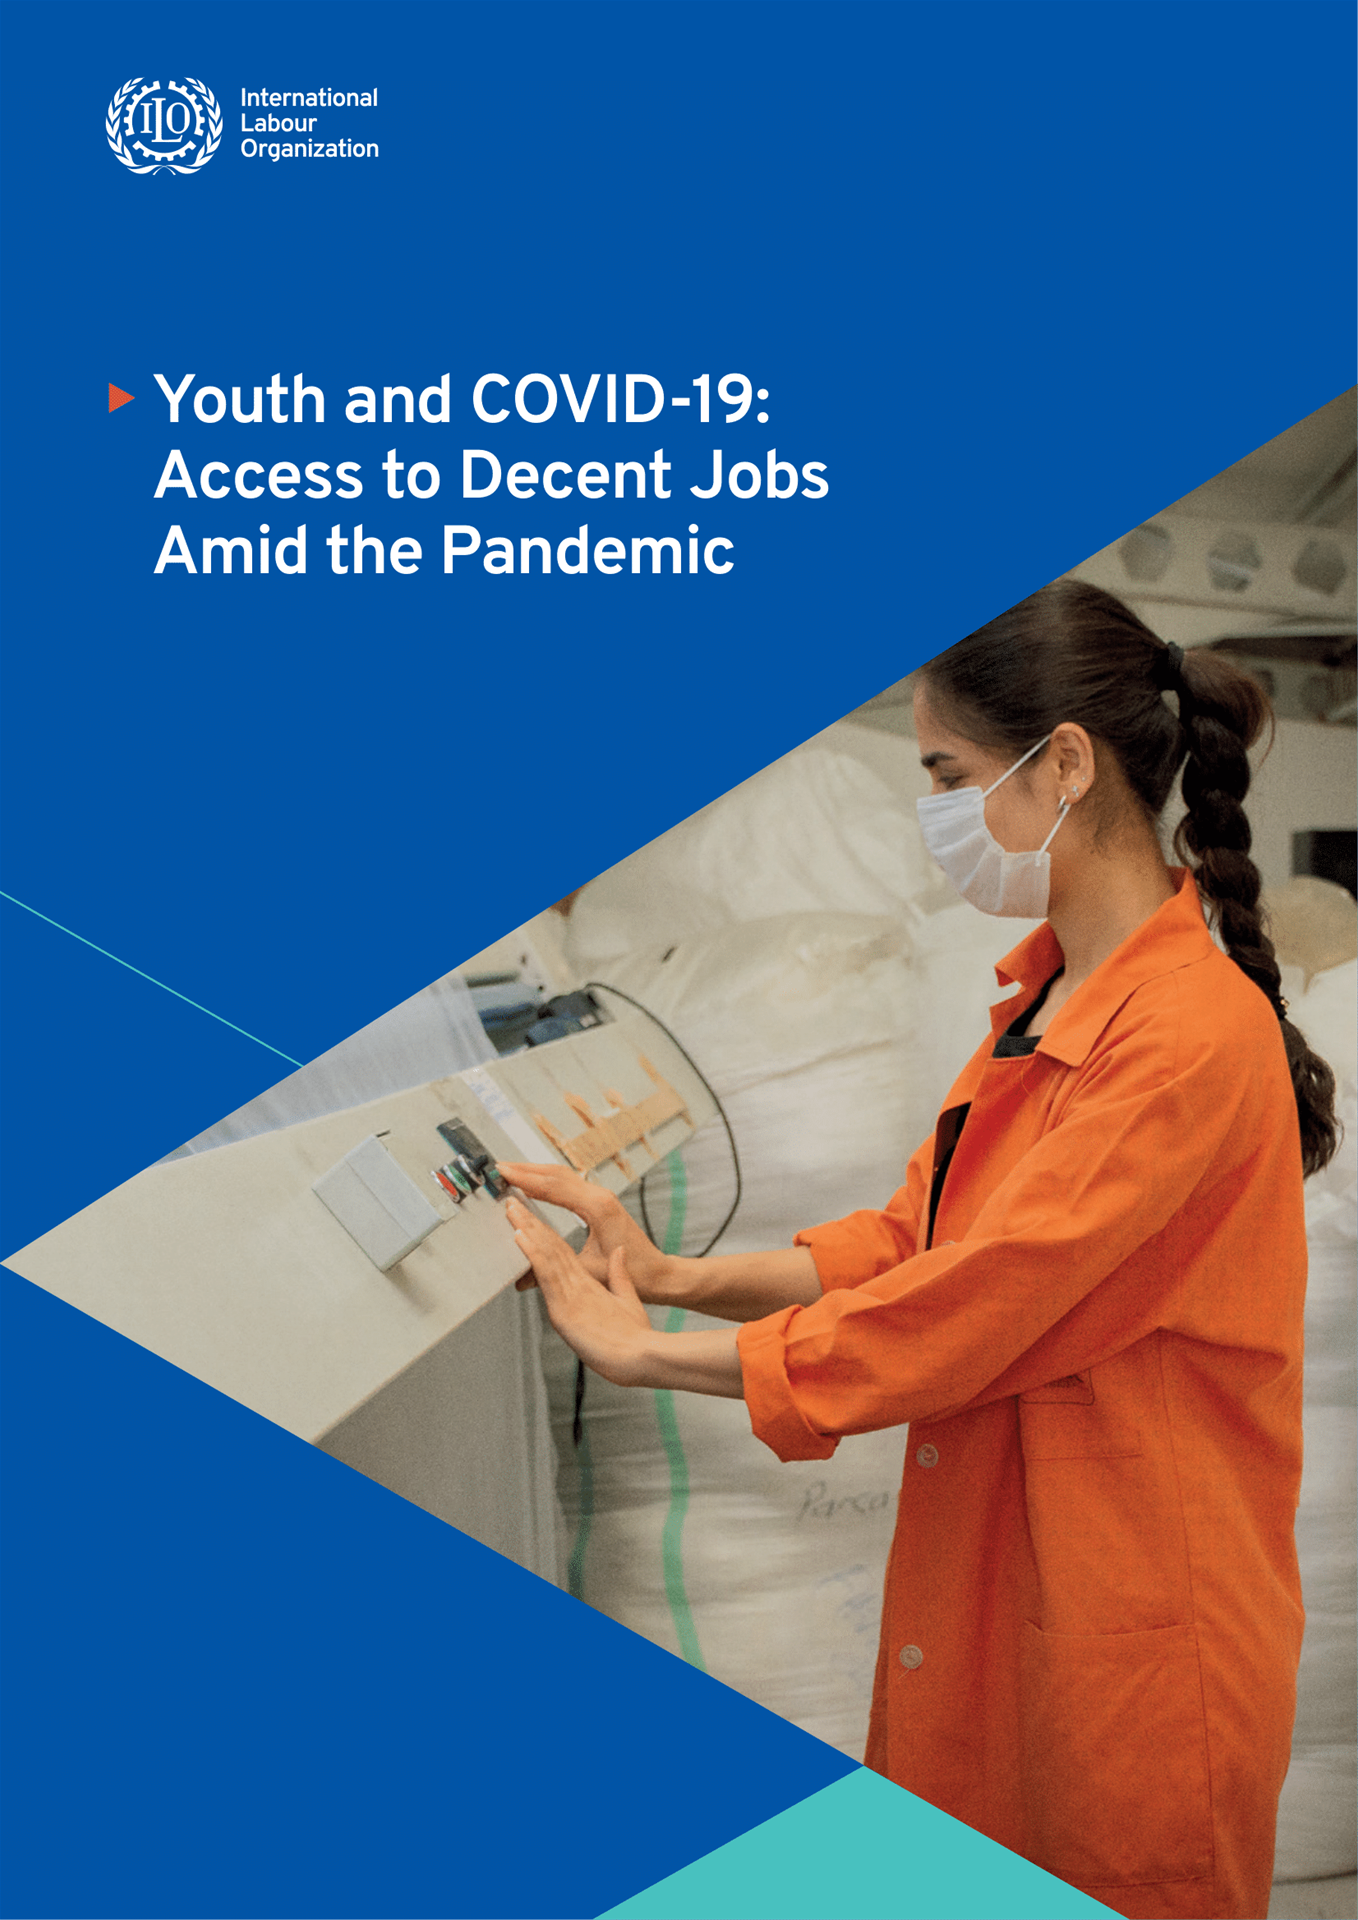 Youth and COVID-19: Access to Decent Jobs Amid the Pandemic